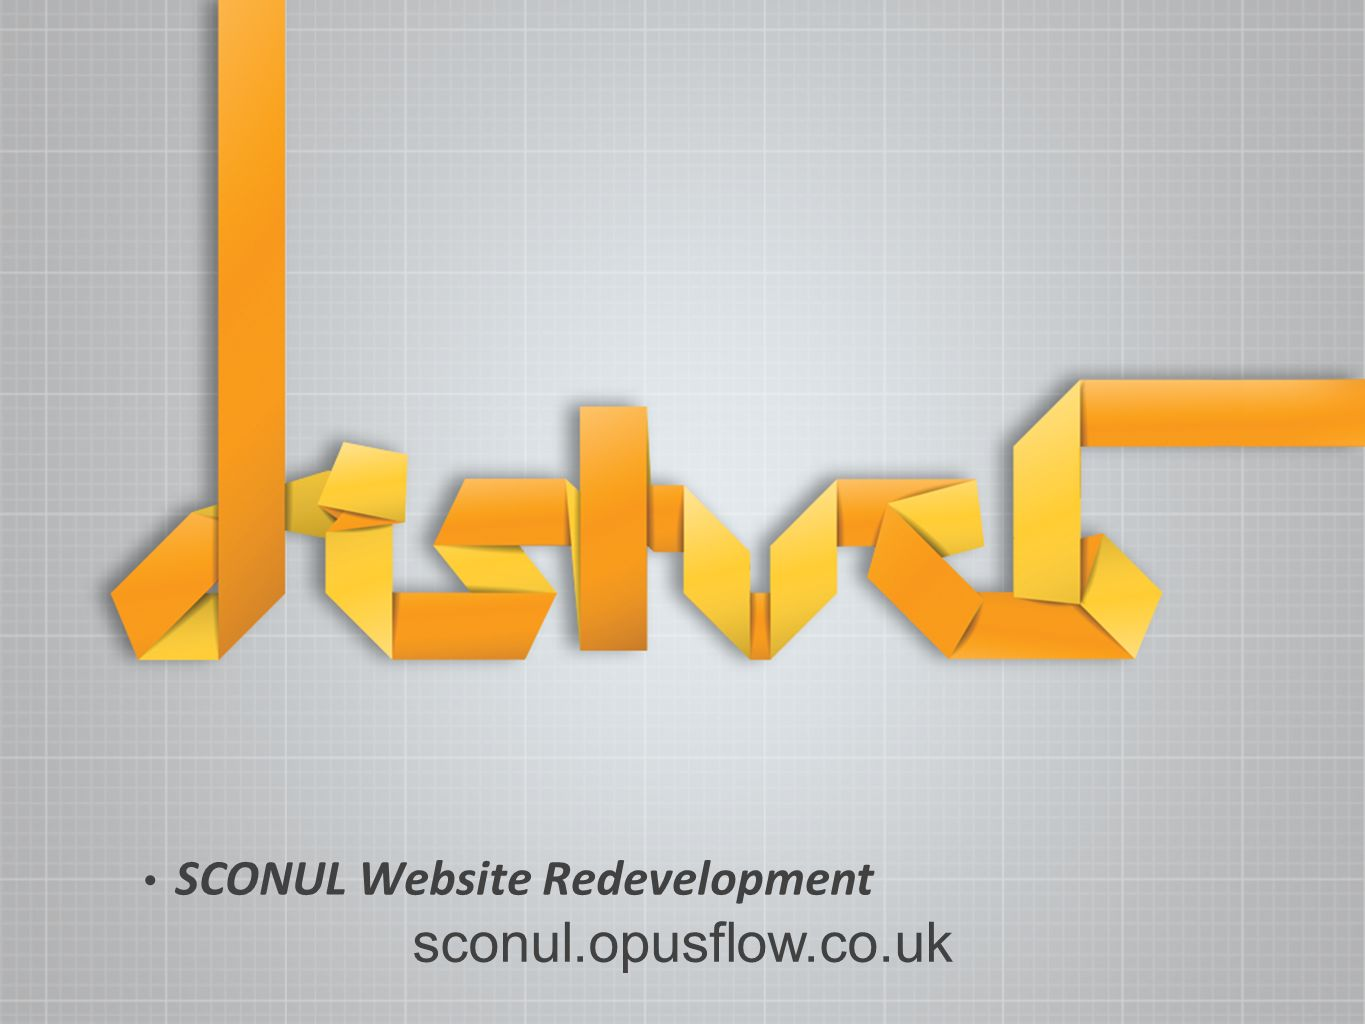 SCONUL Website Redevelopment Copyright Disturb 2012 sconul.opusflow.co.uk